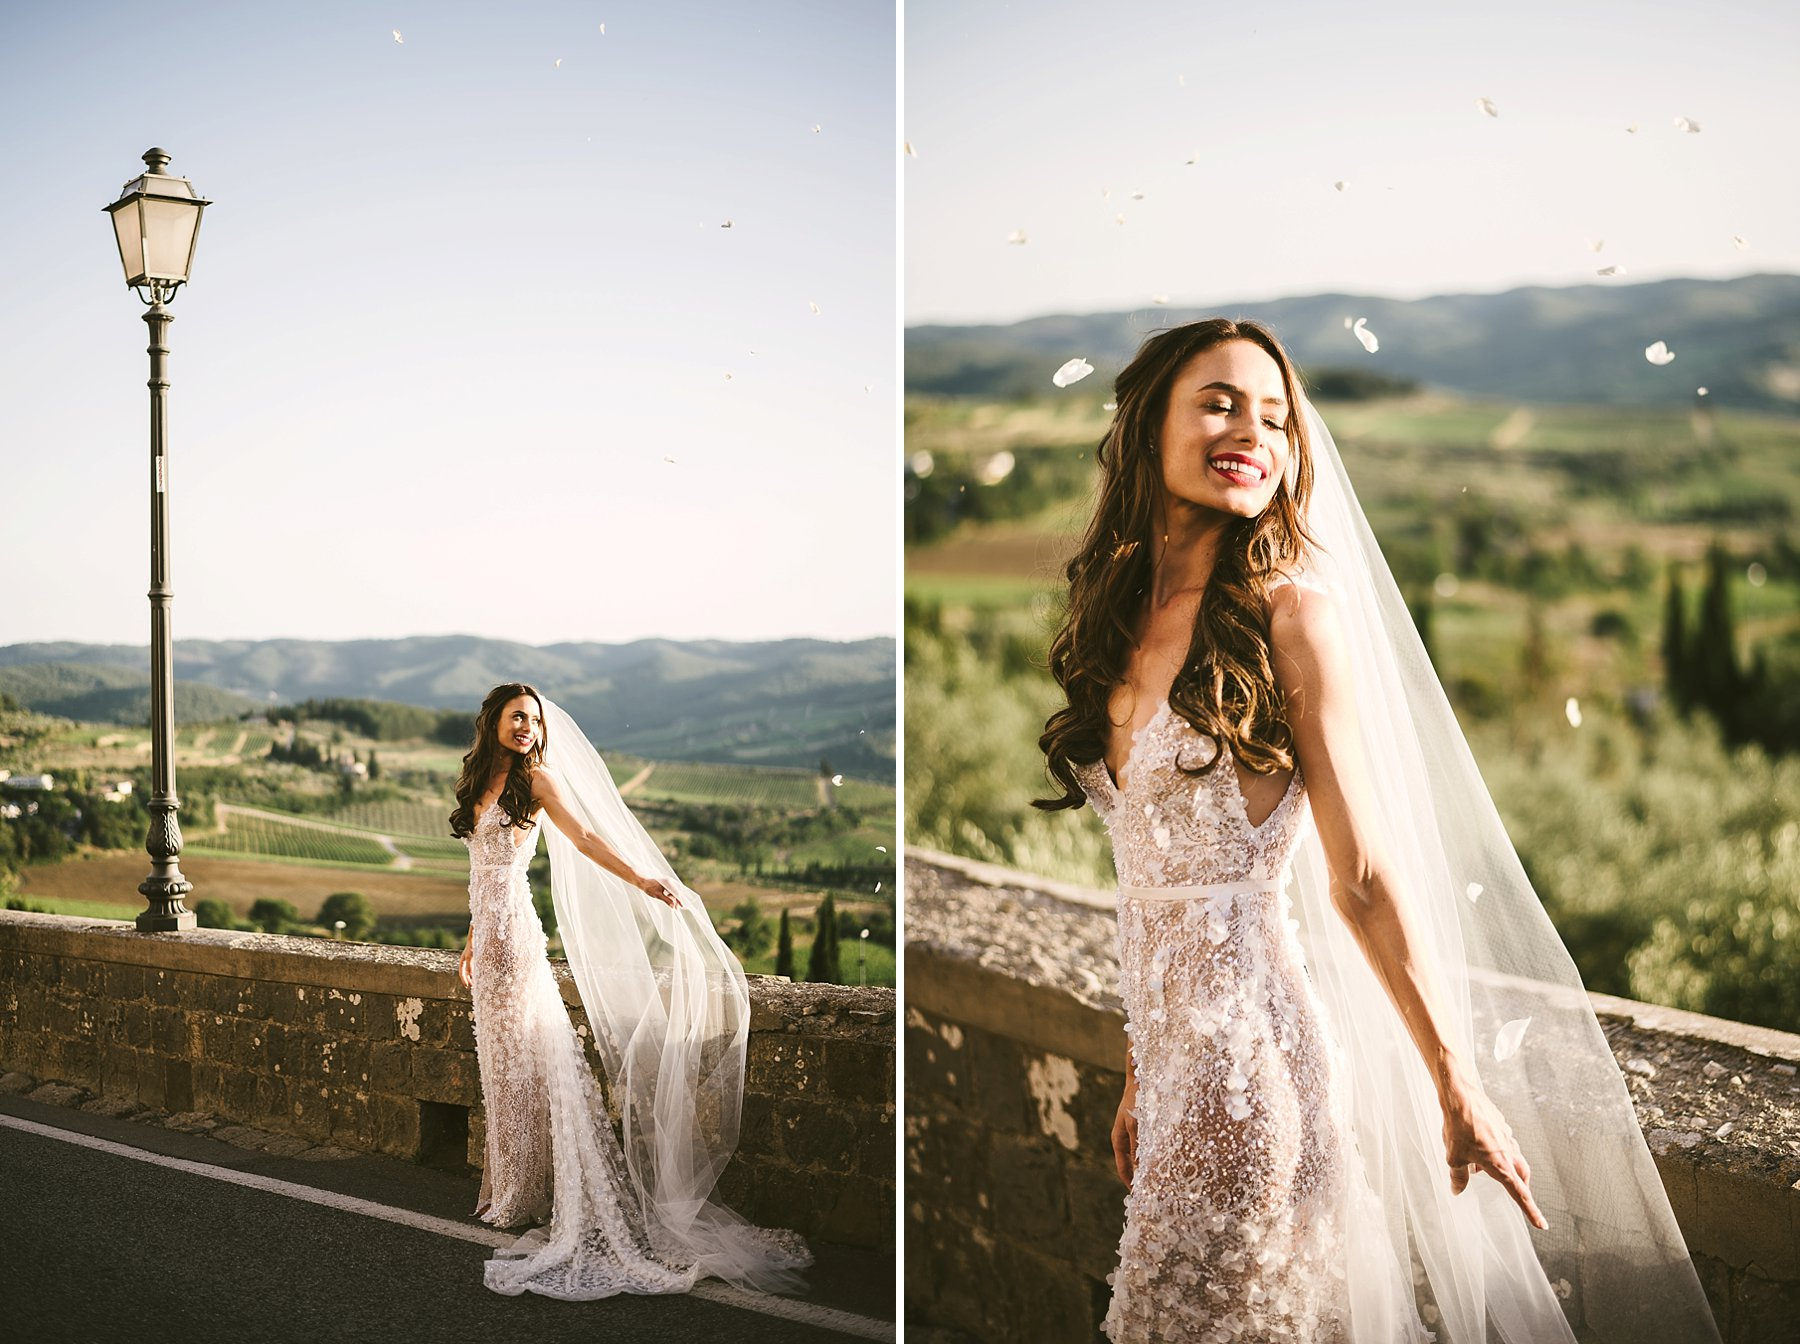 Unforgettable moment of beautiful bride Emily in Tuscany countryside for a destination wedding near Panzano in Chianti